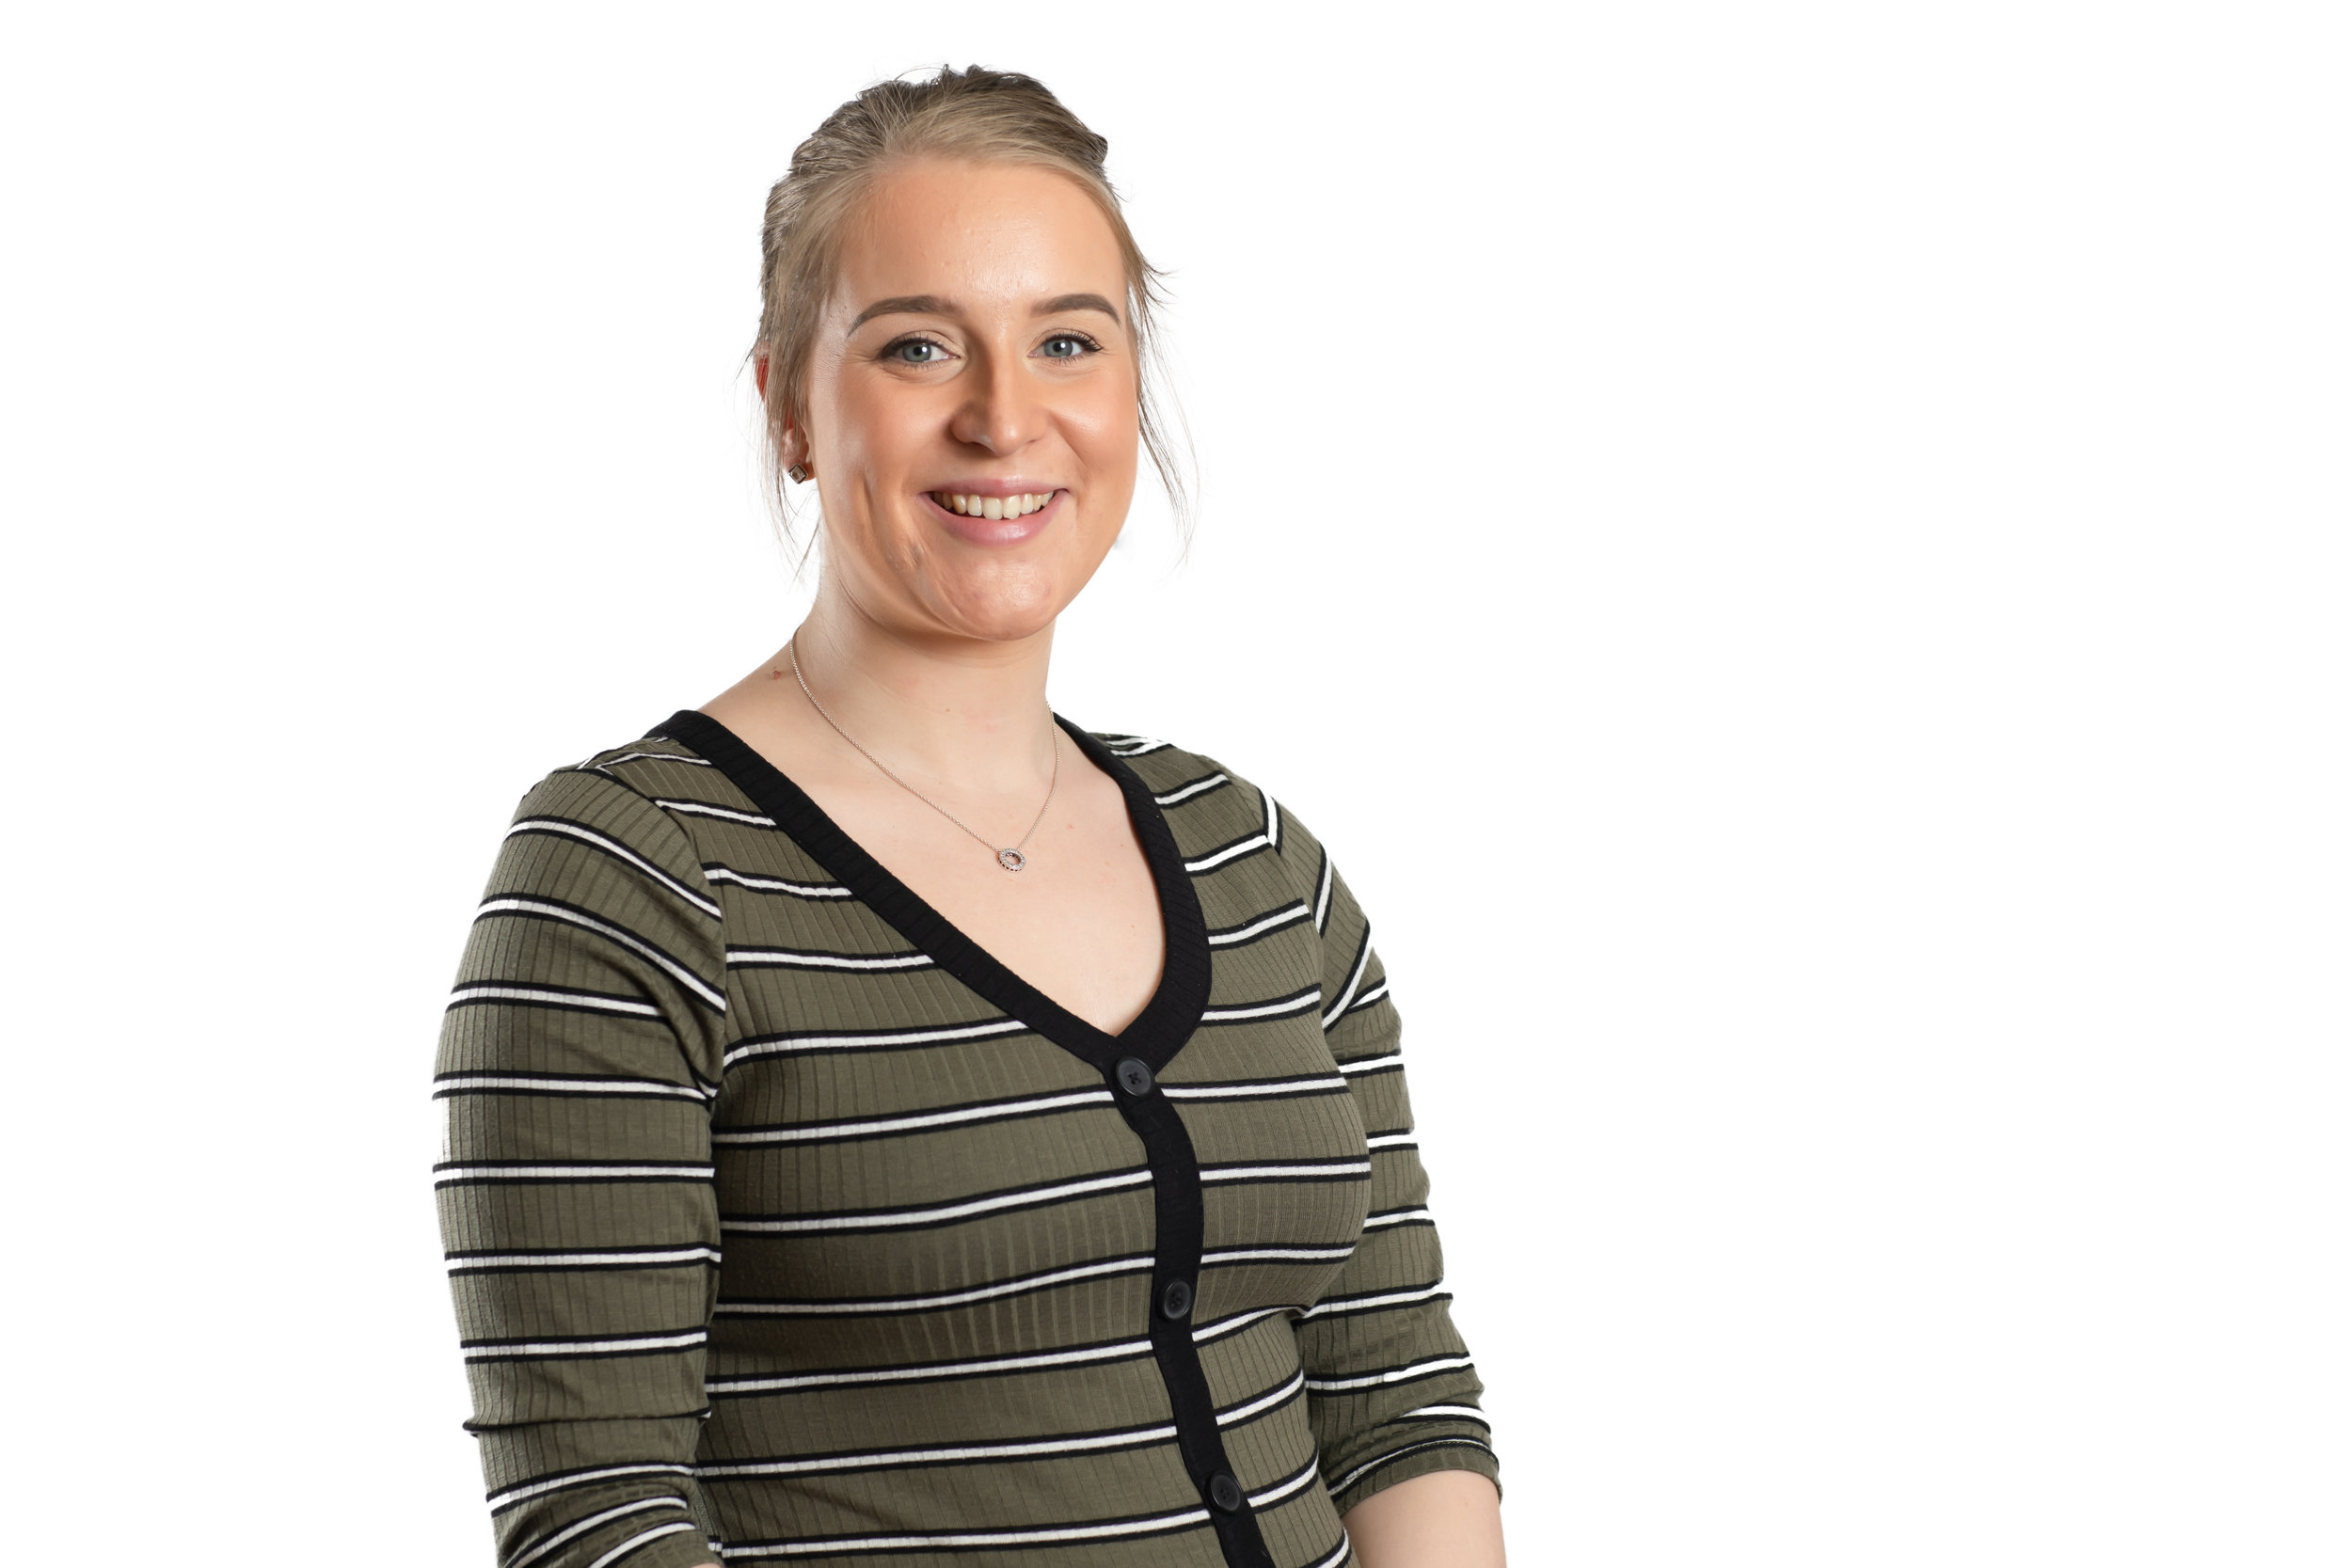 Support throughout the relocation - Meet the team: Rebecca Hyland